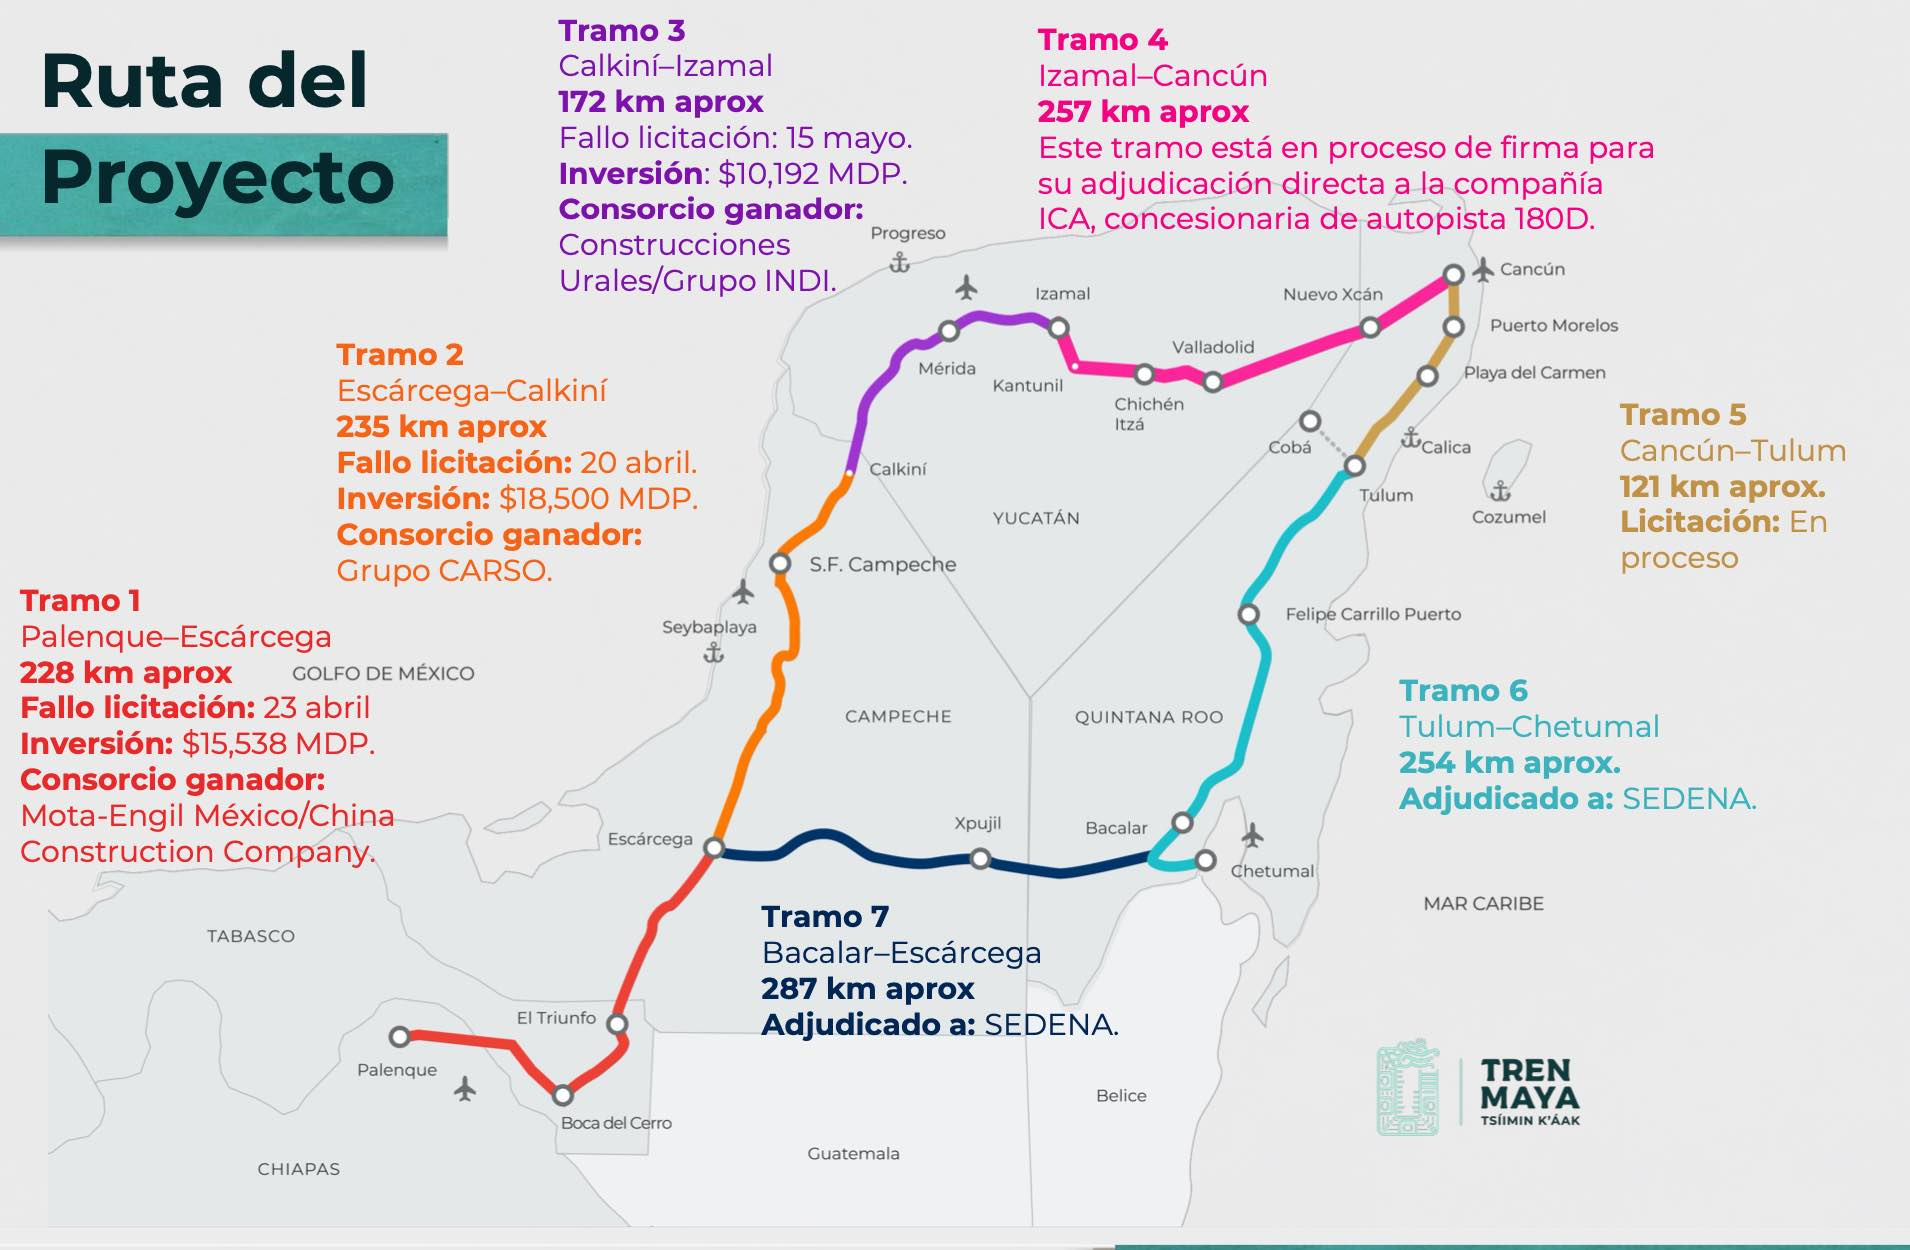 Project spotlight: Mexico's new plan to build stretch 5 of the US$7.5bn Maya train